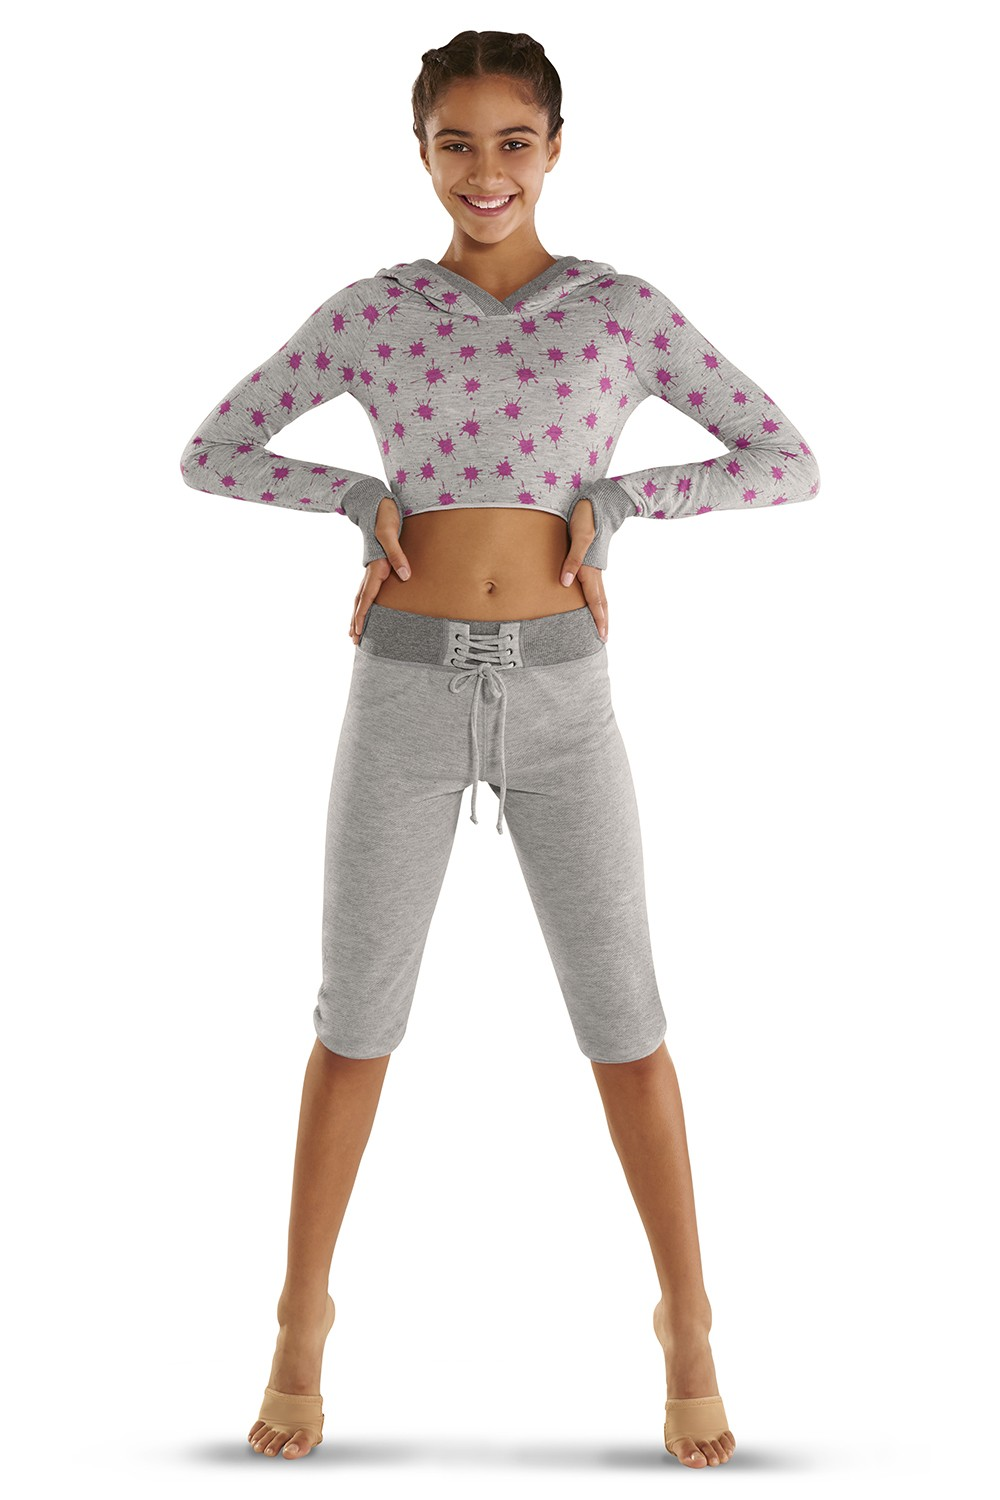 Lace Up 3/4 Length Sweatpants Children's Bottoms